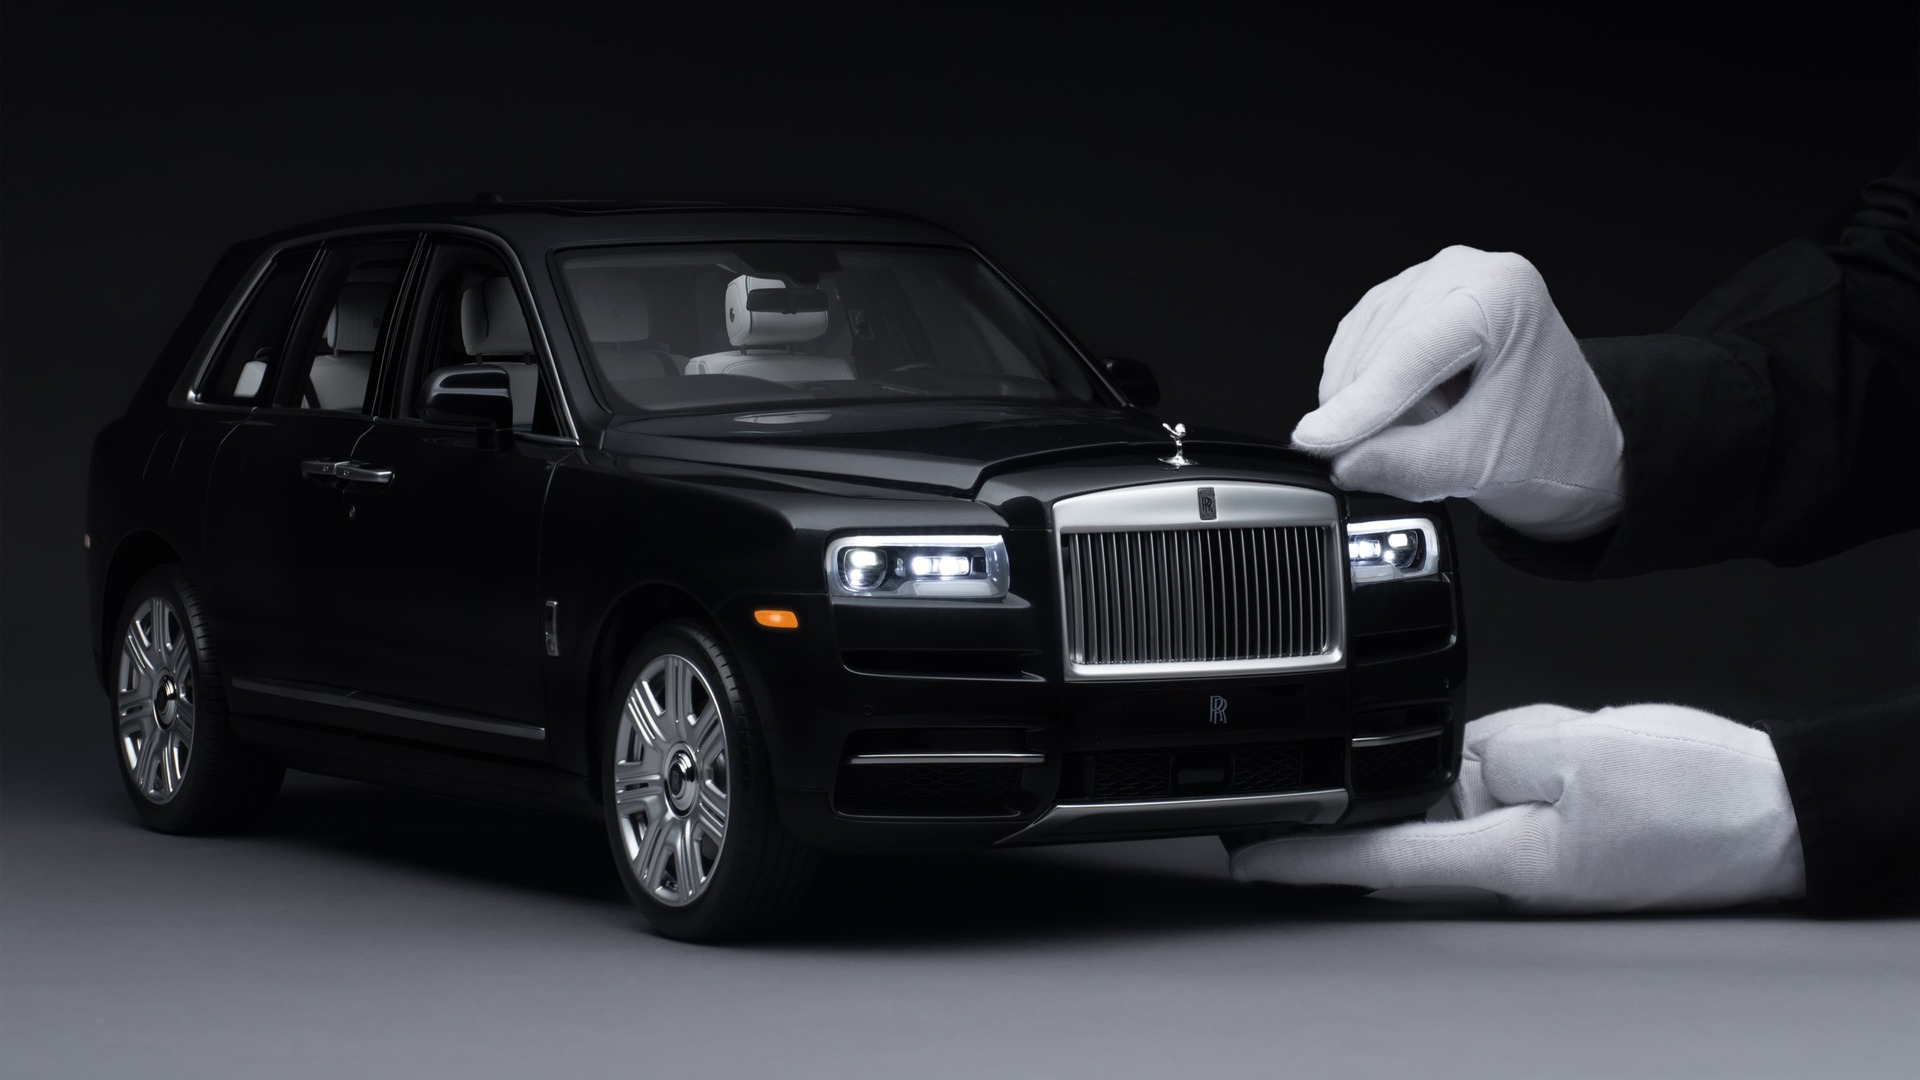 1:8 scale model of the Rolls-Royce Cullinan motor car with hand opening the bonnet